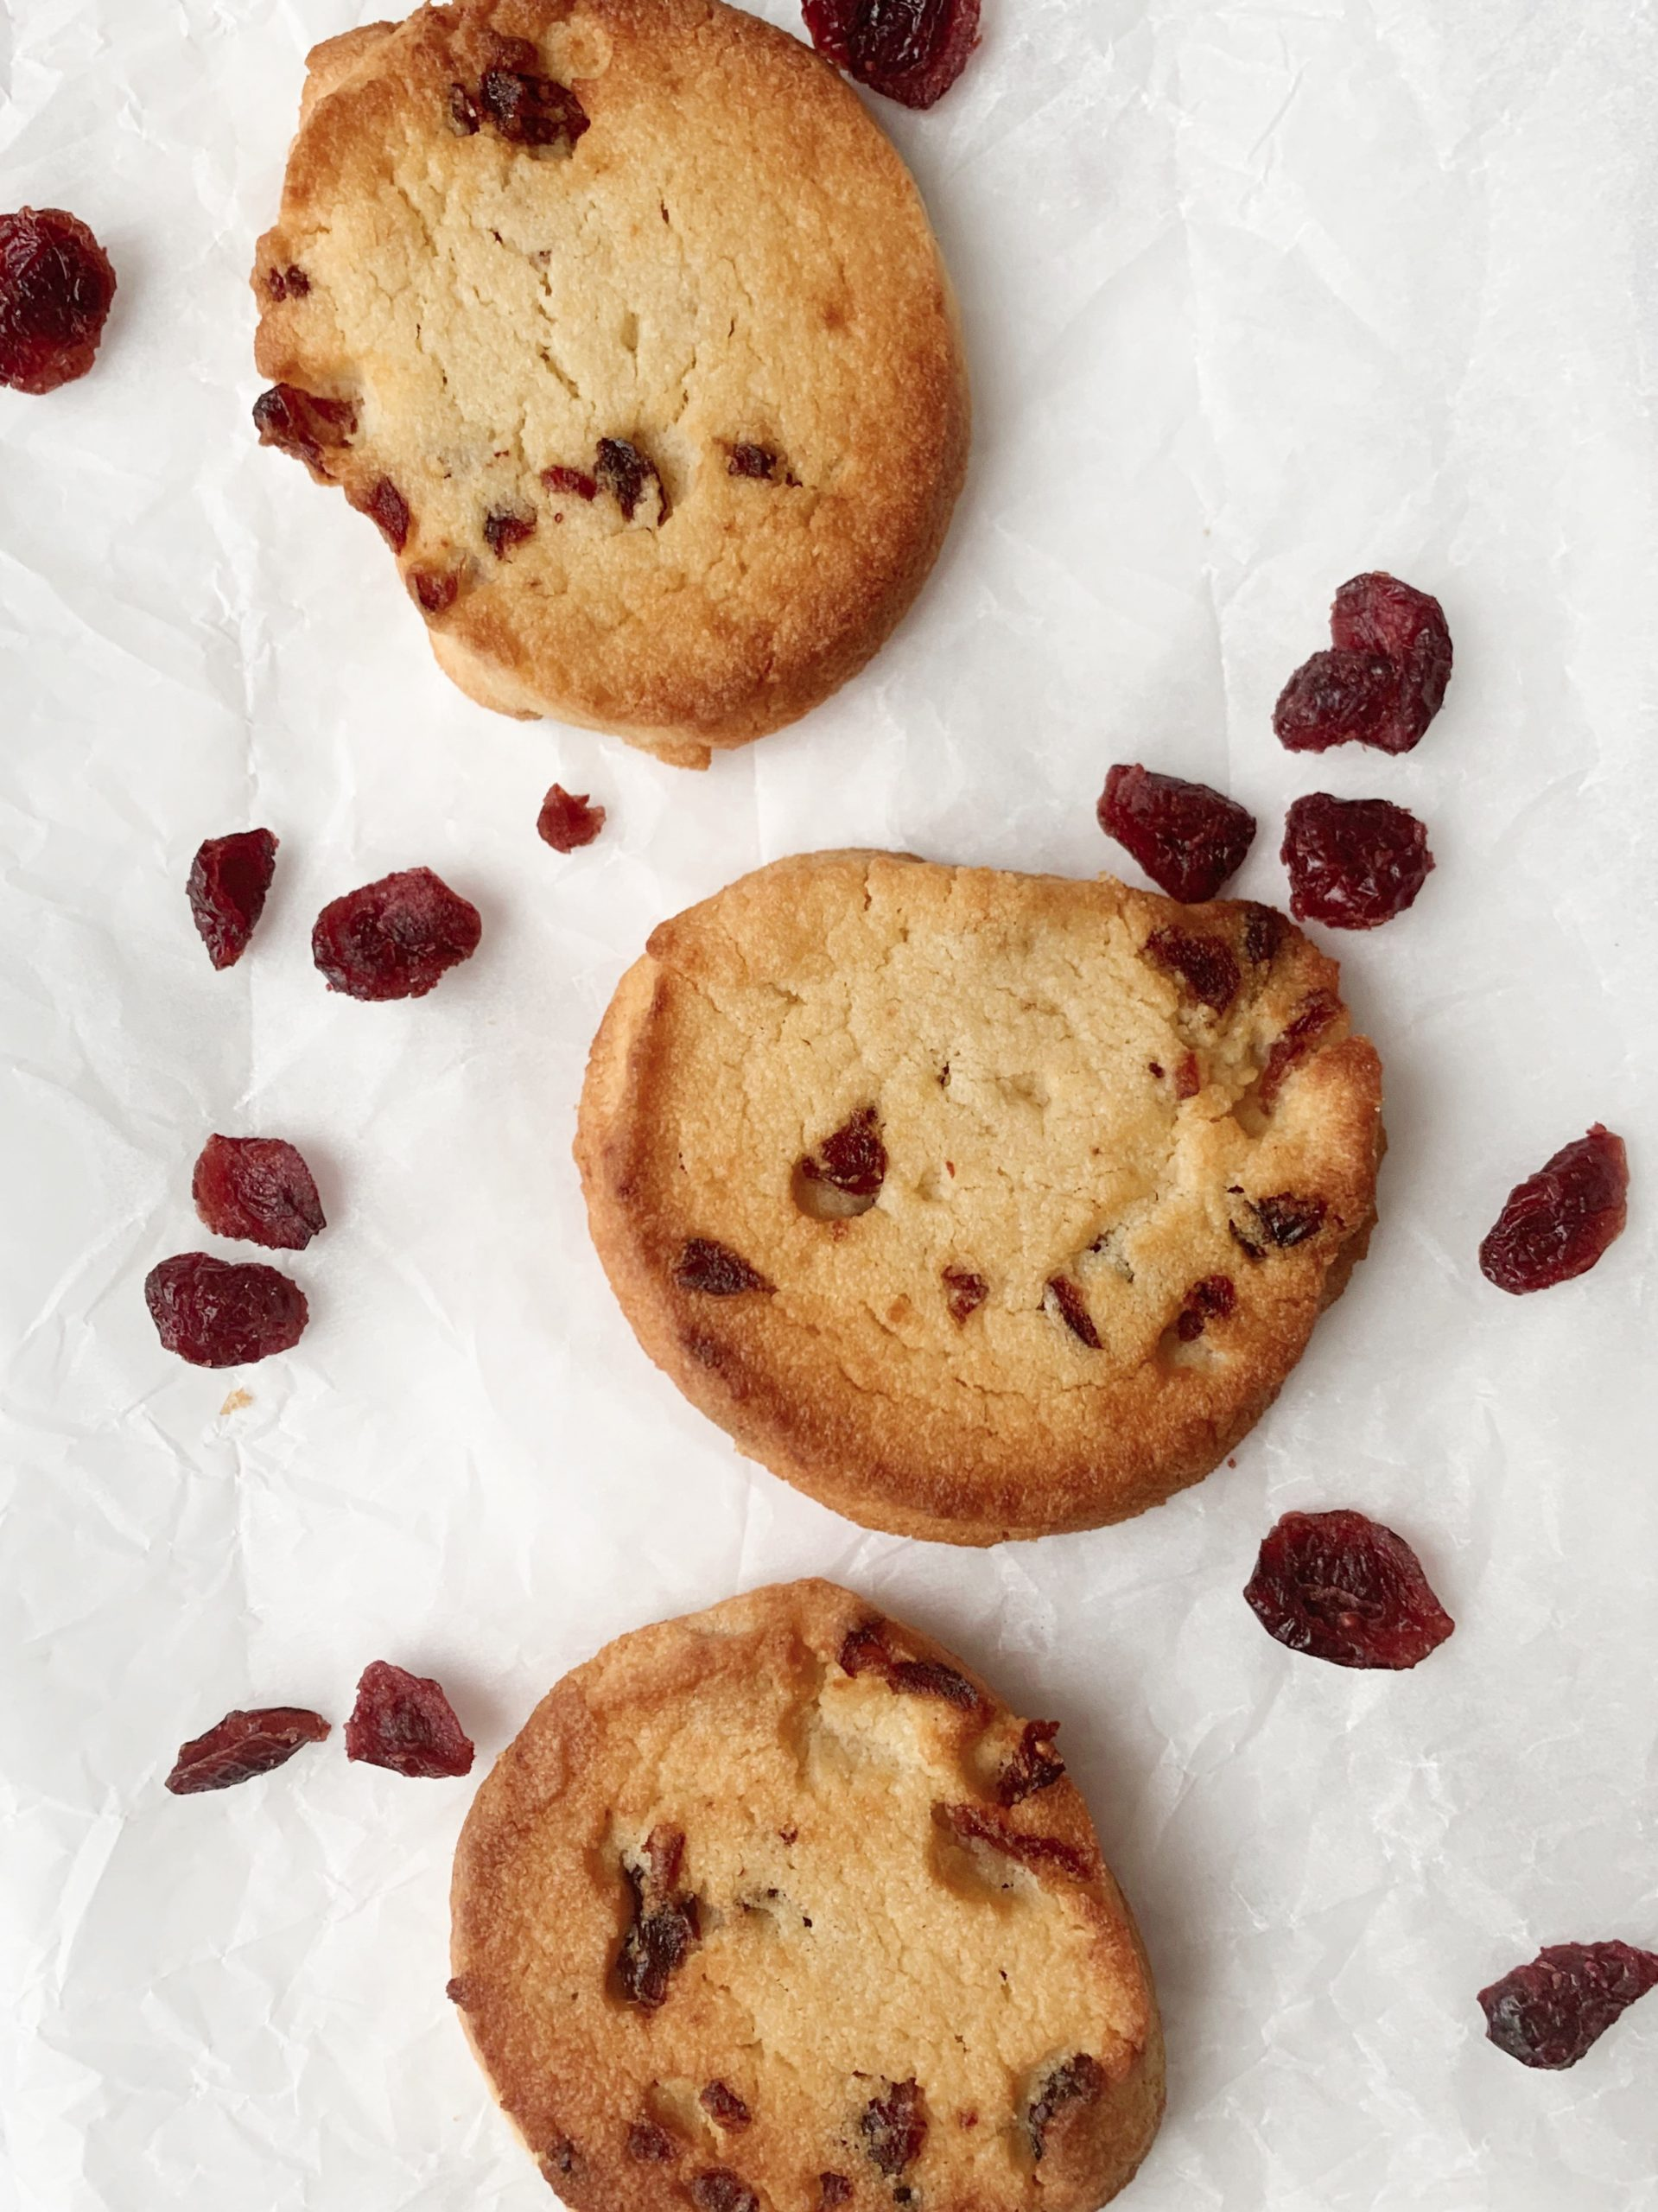 Picture of baked keto slice and bake sugar cookies with cranberries and orange